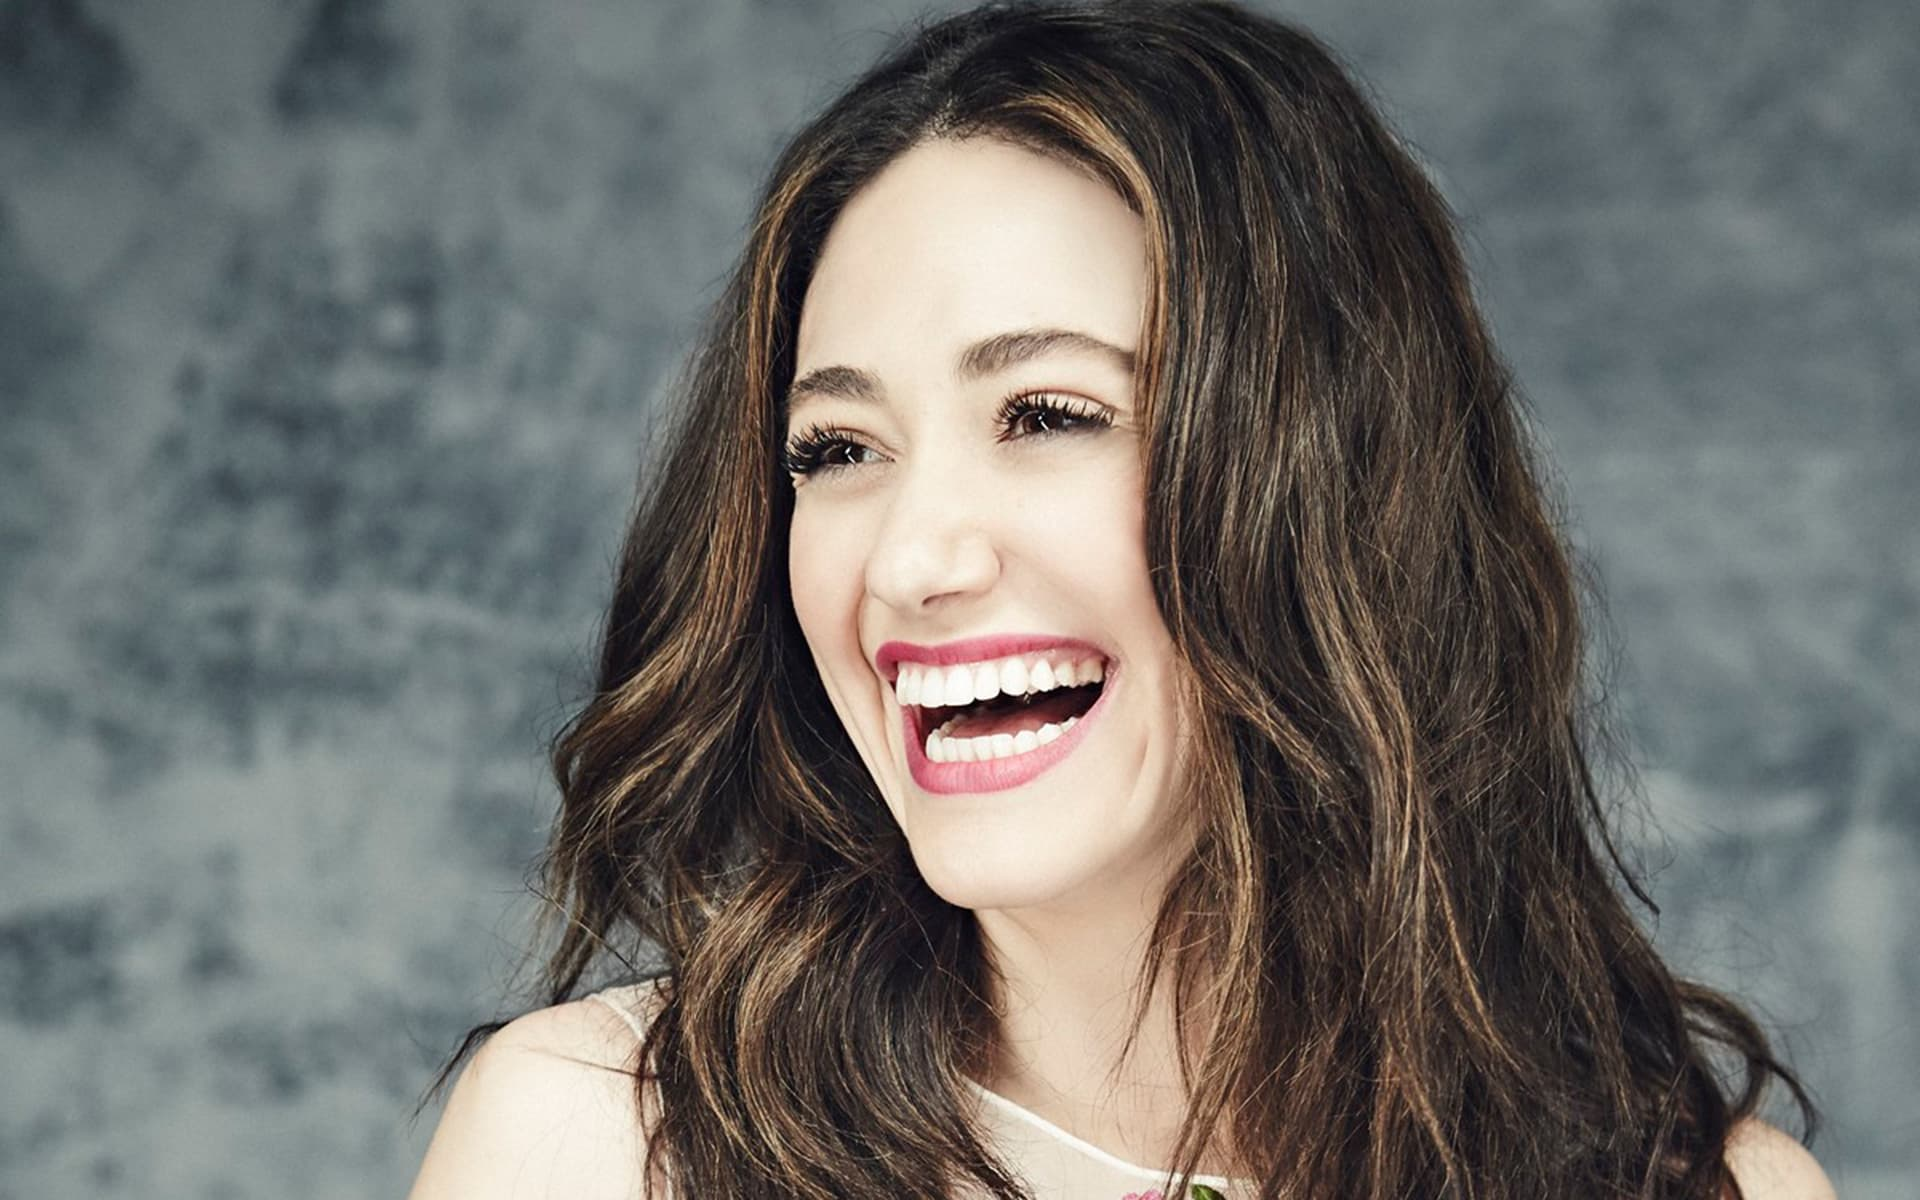 emmy rossum sublime wallpaper - photo #20